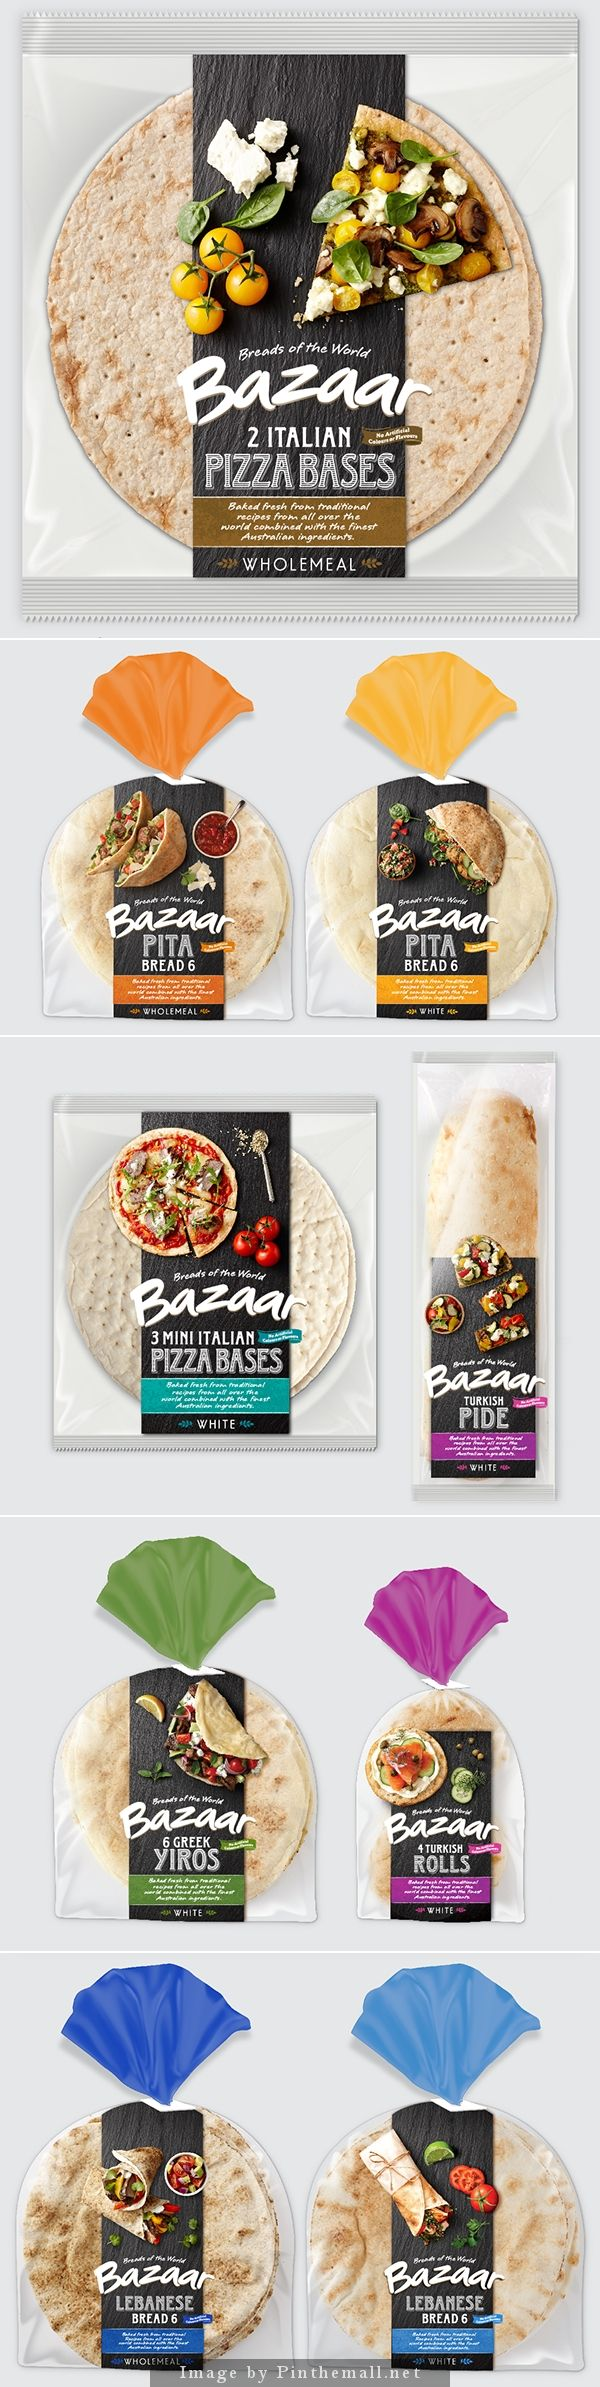 Great package design for a bread brand!